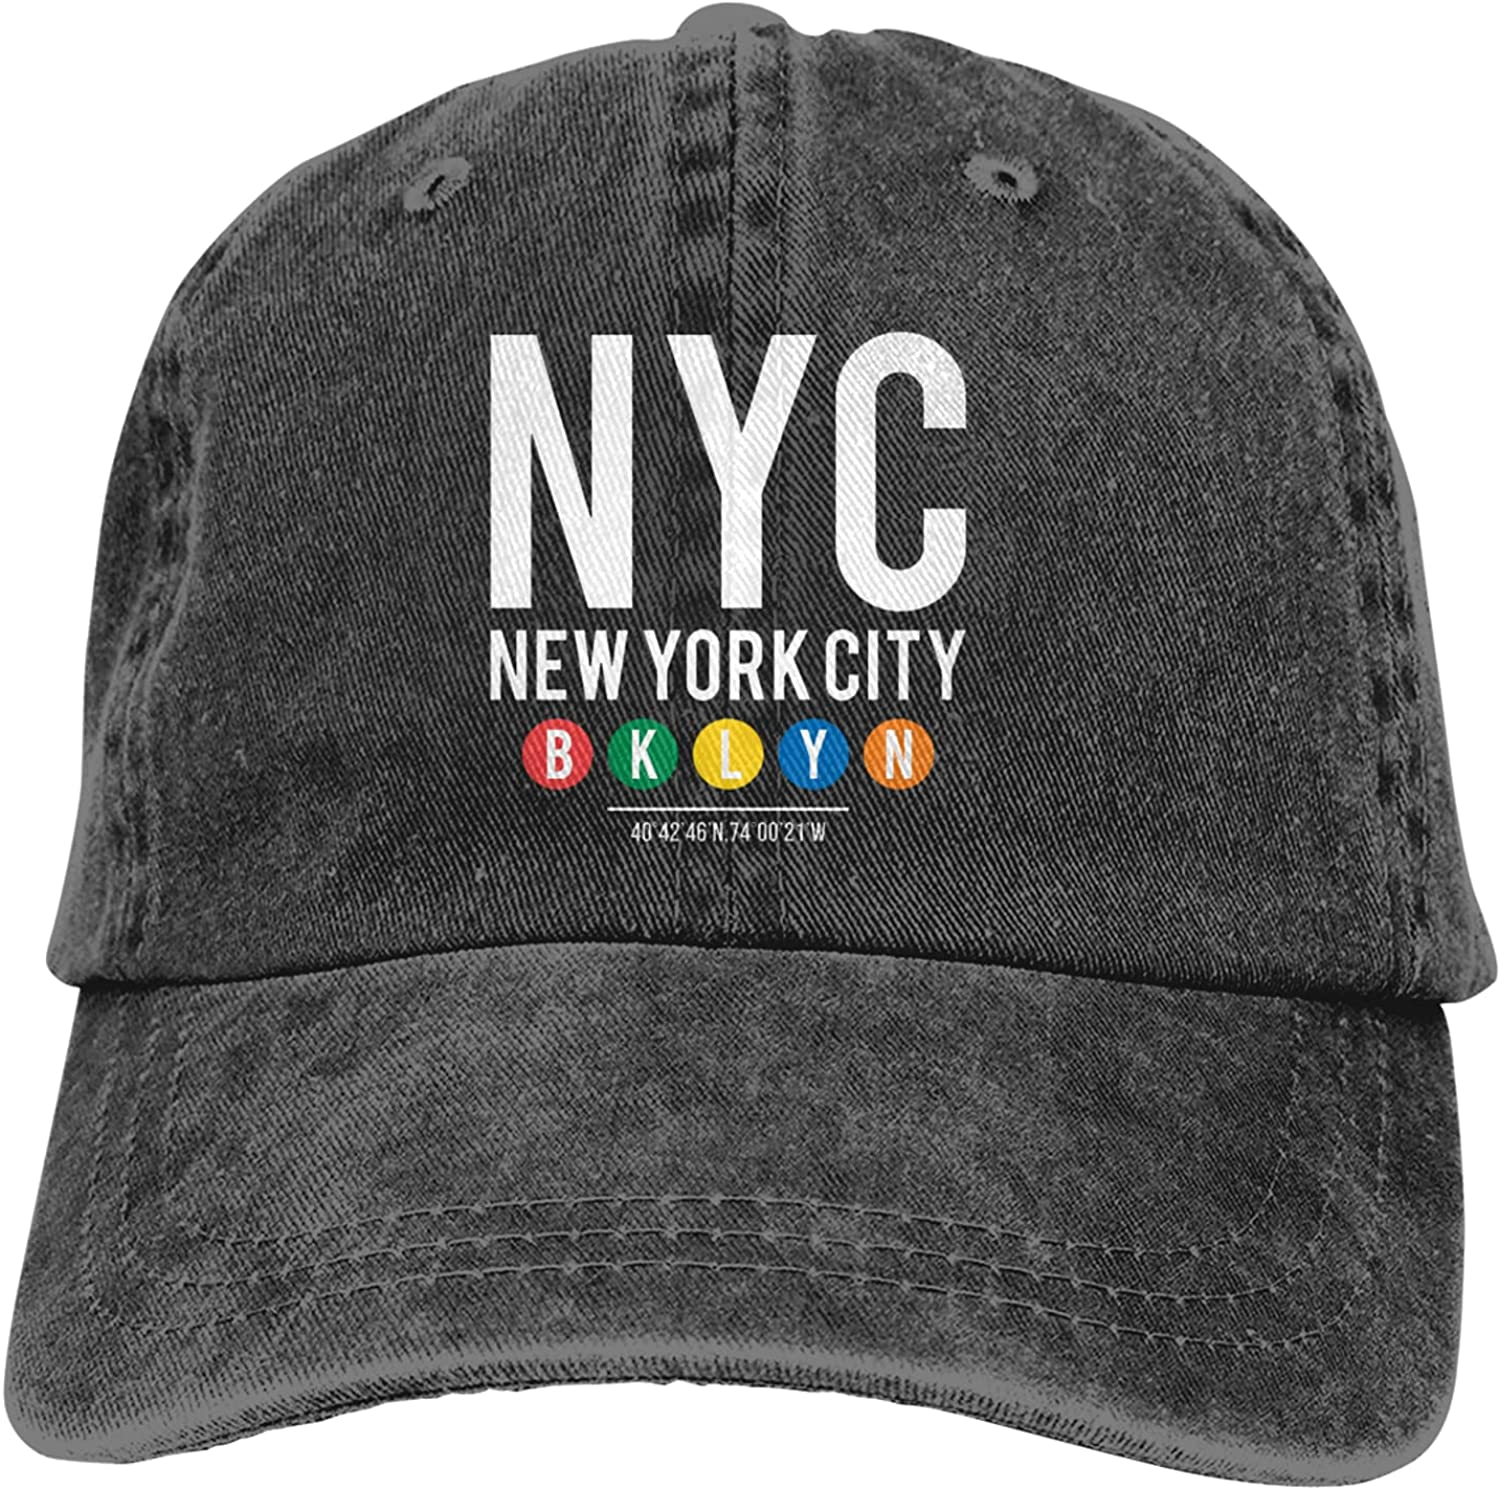 100% quality warranty! NYC New York City BKLYN Basebal Excellence Washed Vintage Adjustable Cotton